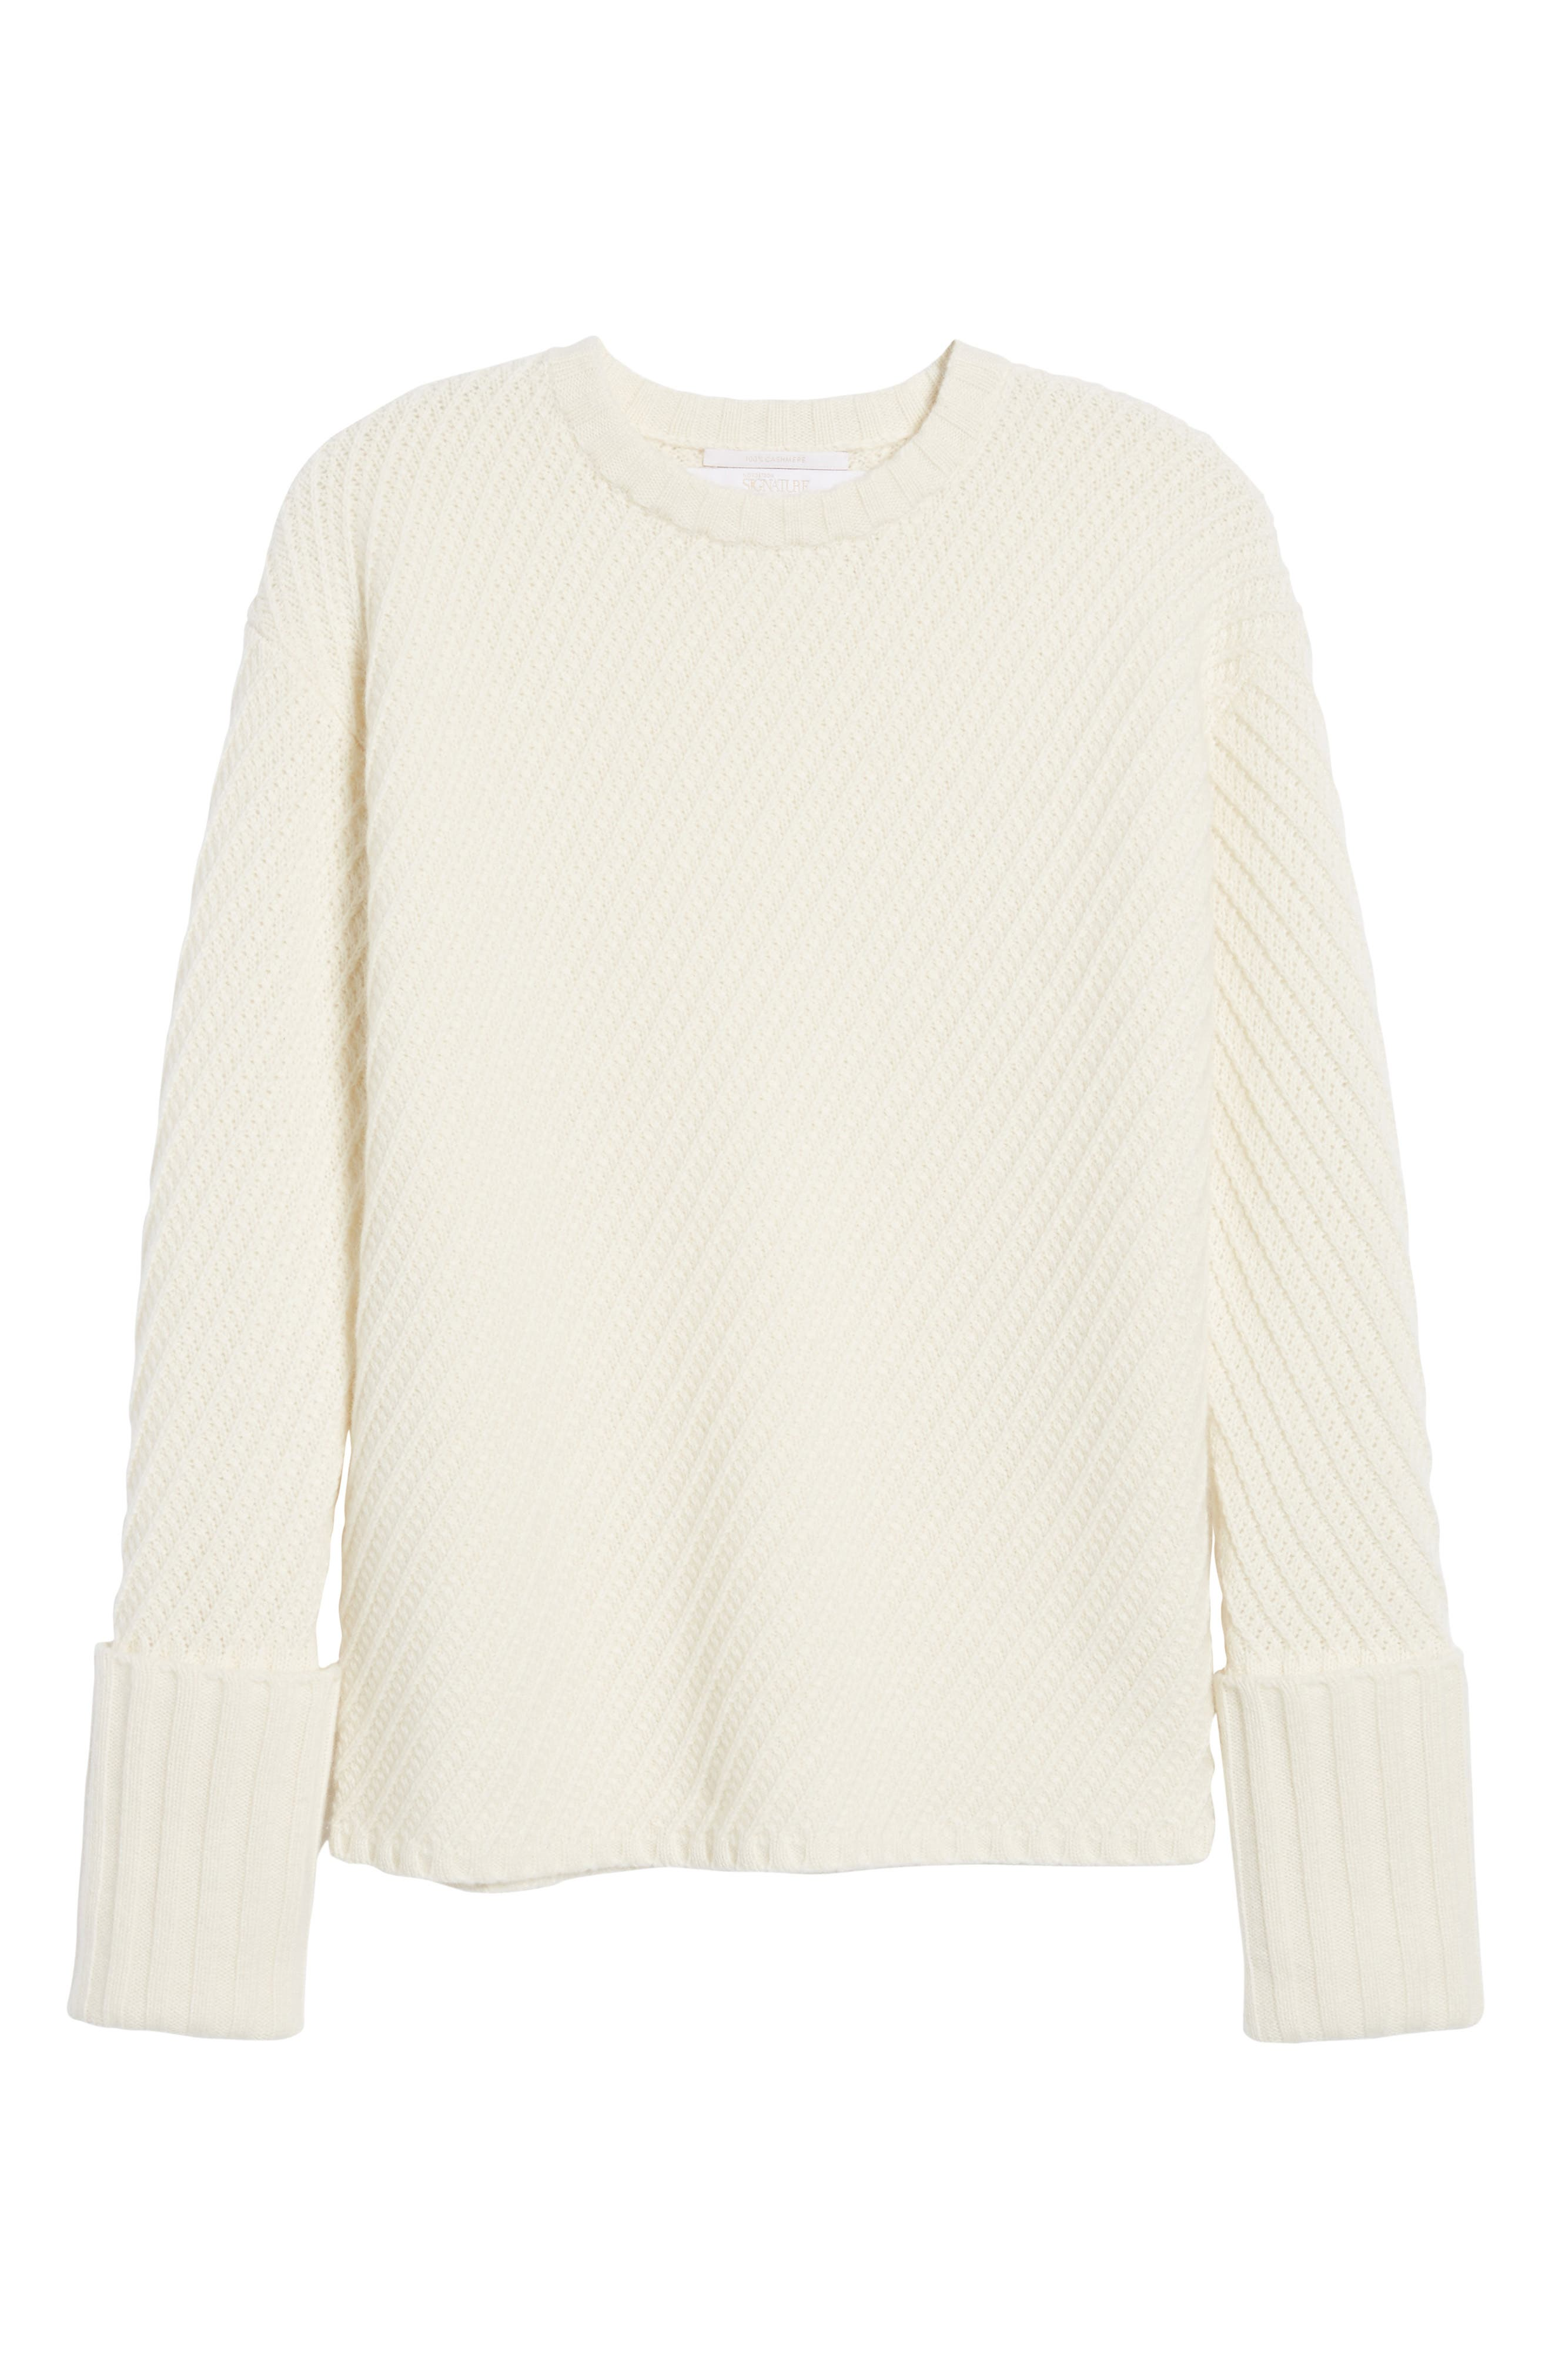 Textured Cashmere Sweater,                             Alternate thumbnail 6, color,                             Ivory Soft